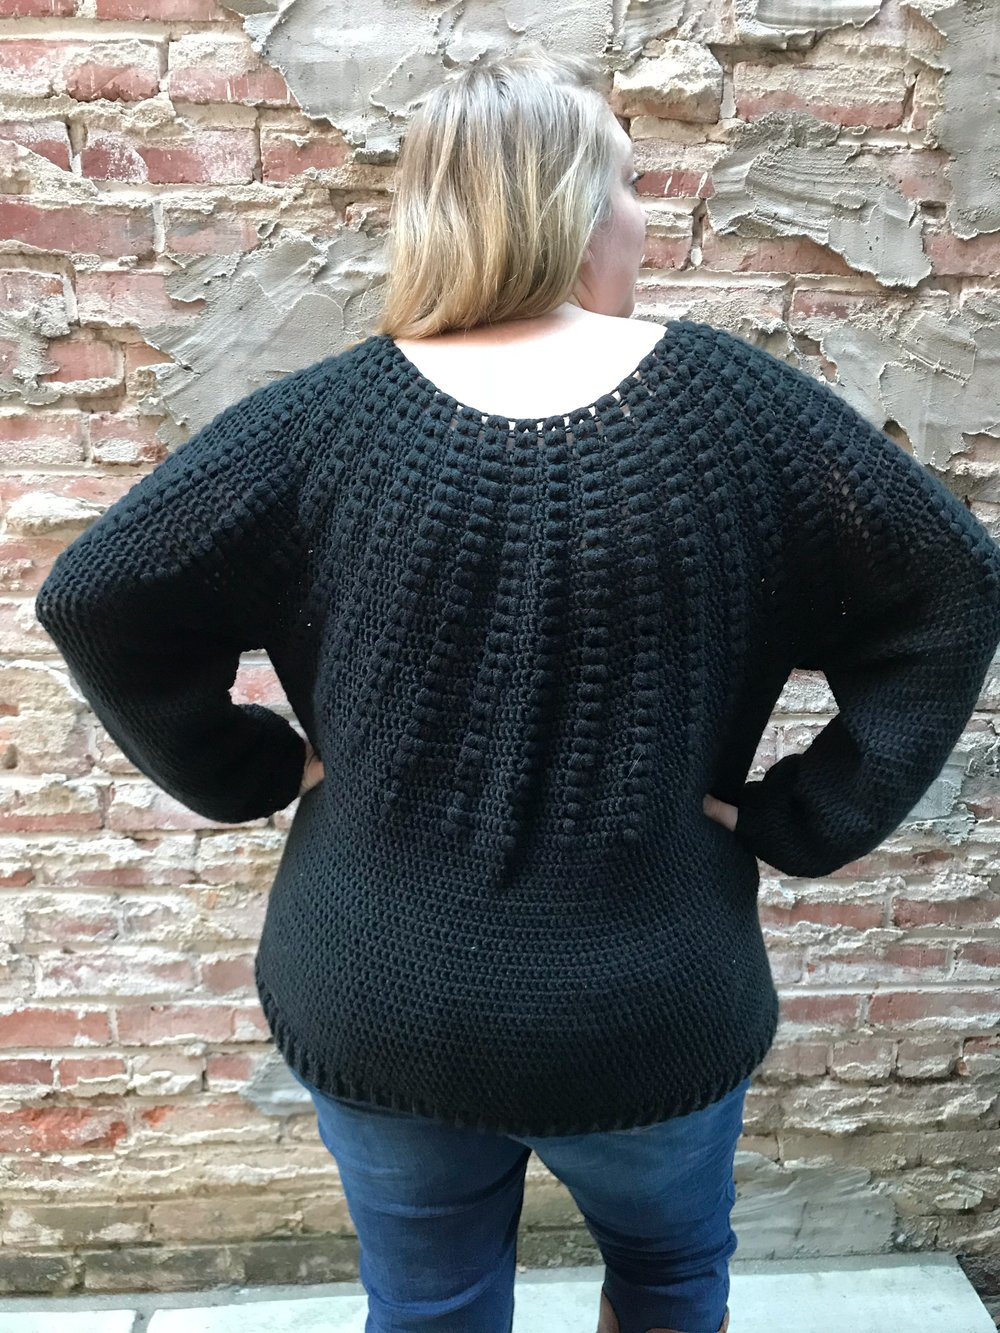 the goldenrod sweater